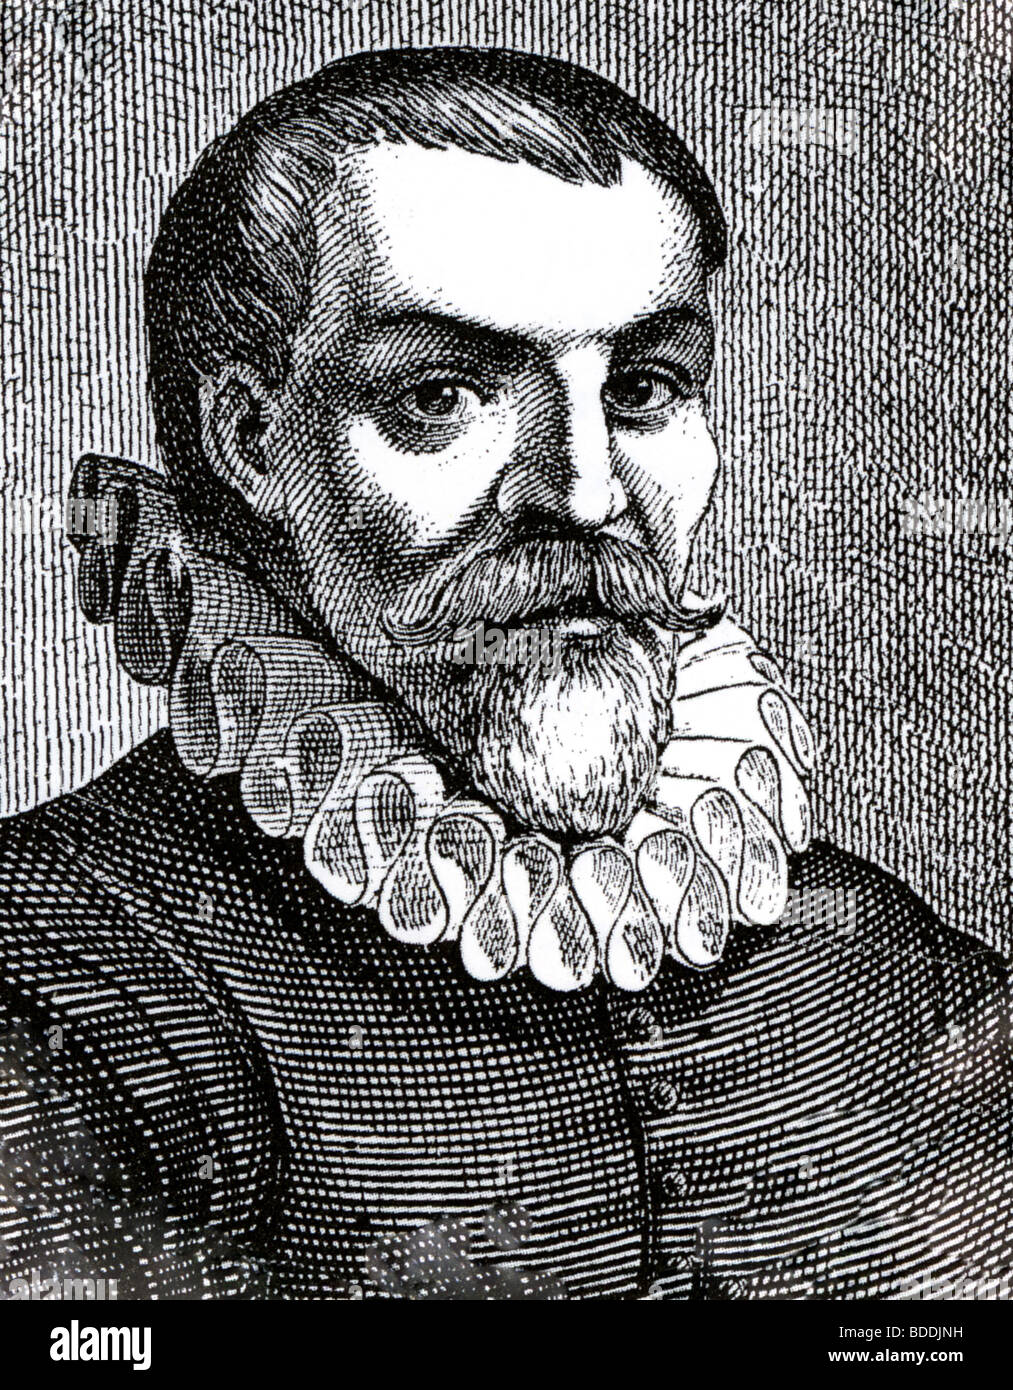 WILLEM BARENTS ( c 1550 - 1597) Dutch navigator, cartographer and explorer  after whom the Barents Strait is name